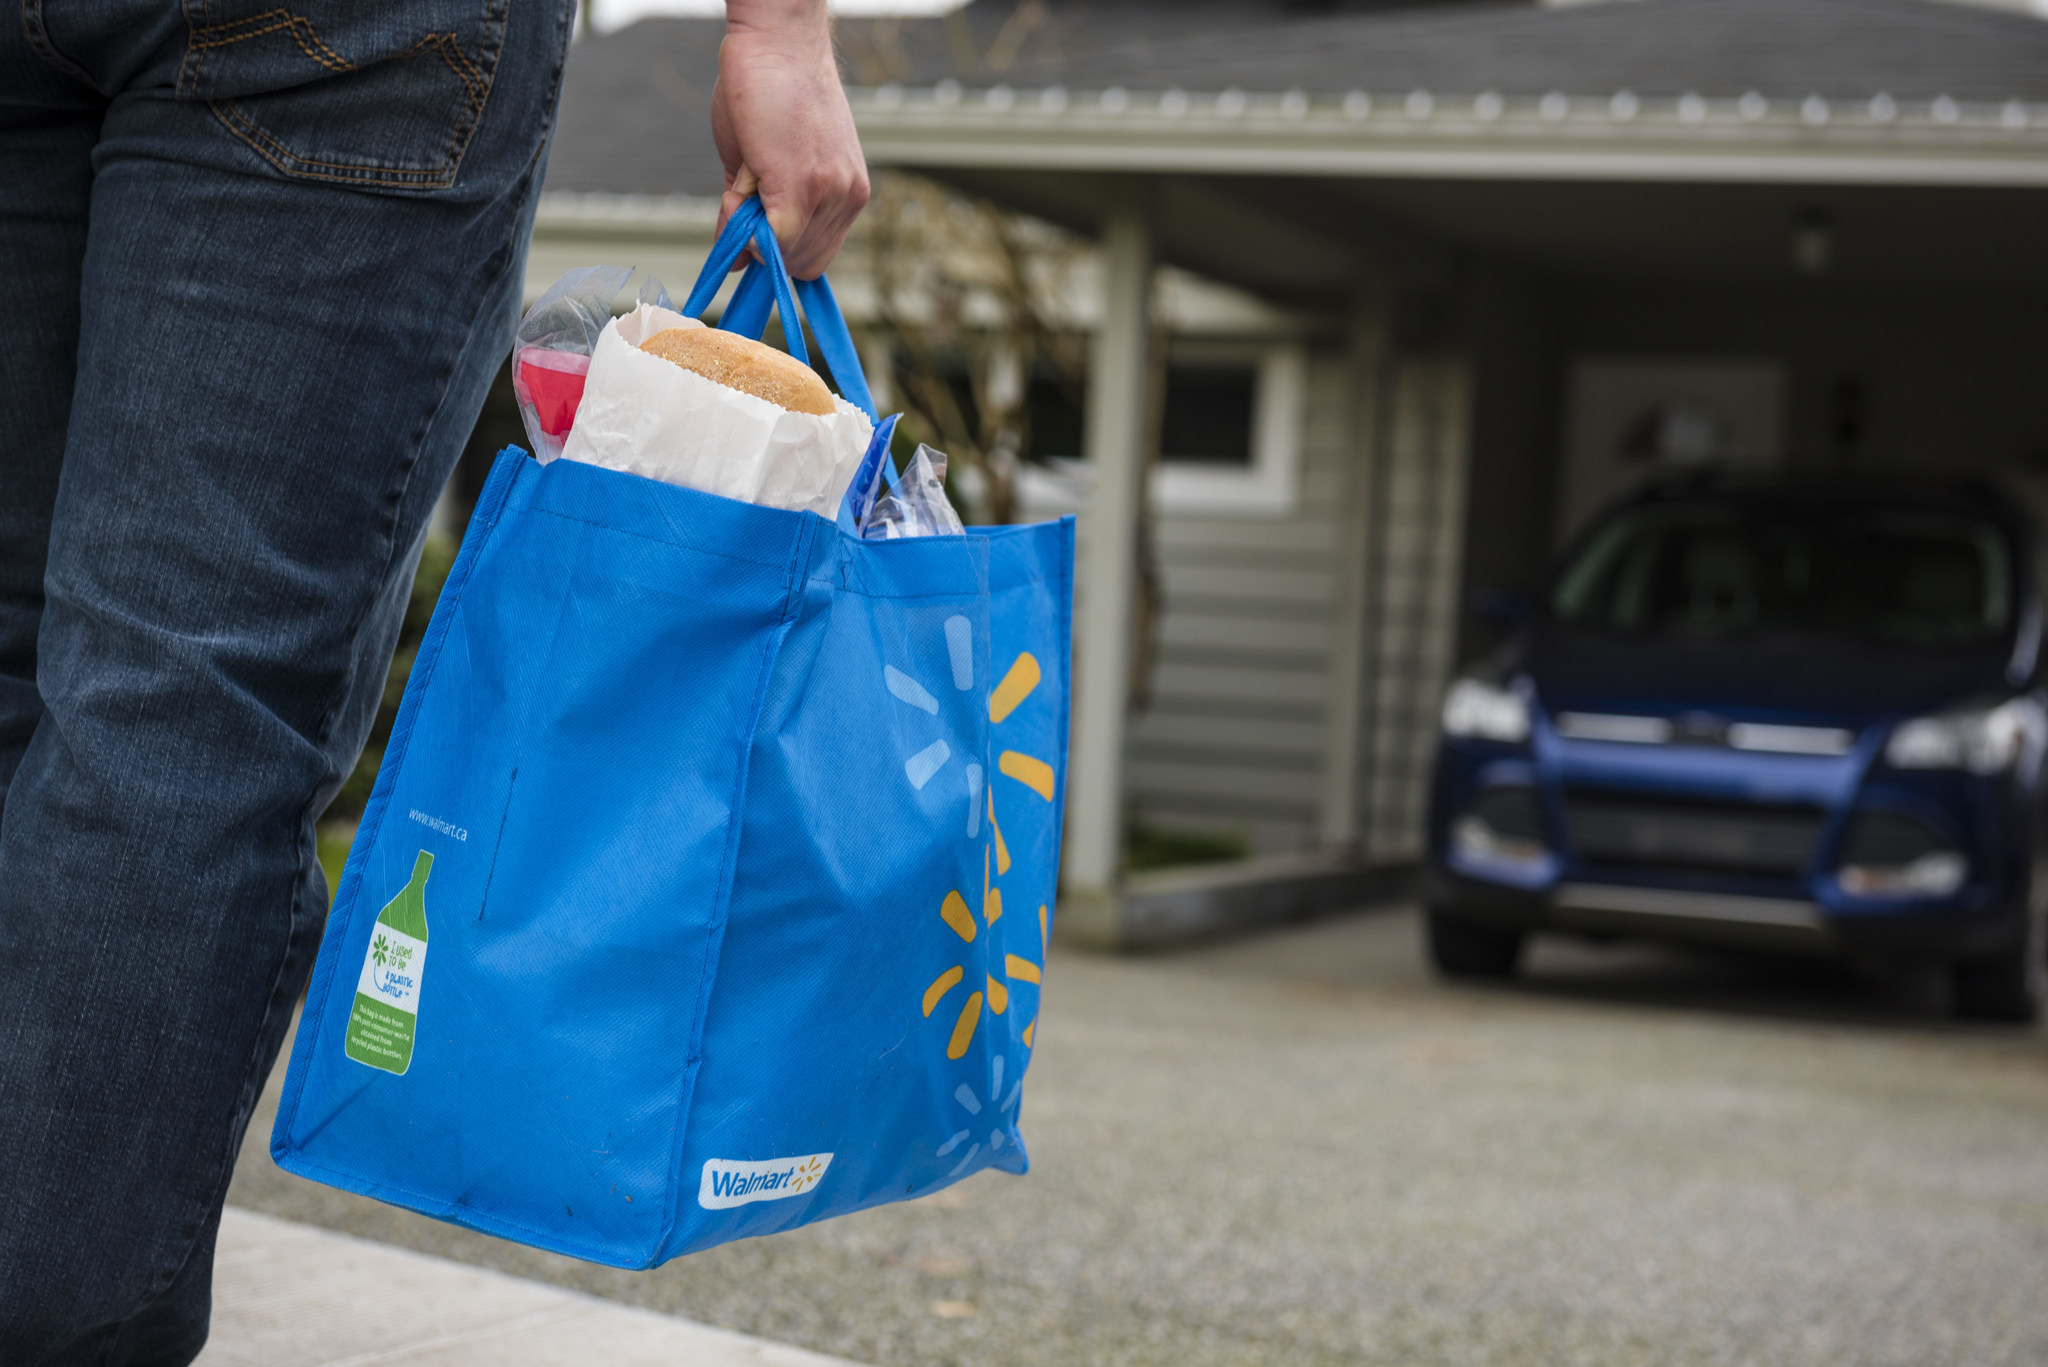 Walmart Expands Online Grocery Delivery Thanks to Partnership With Postmates